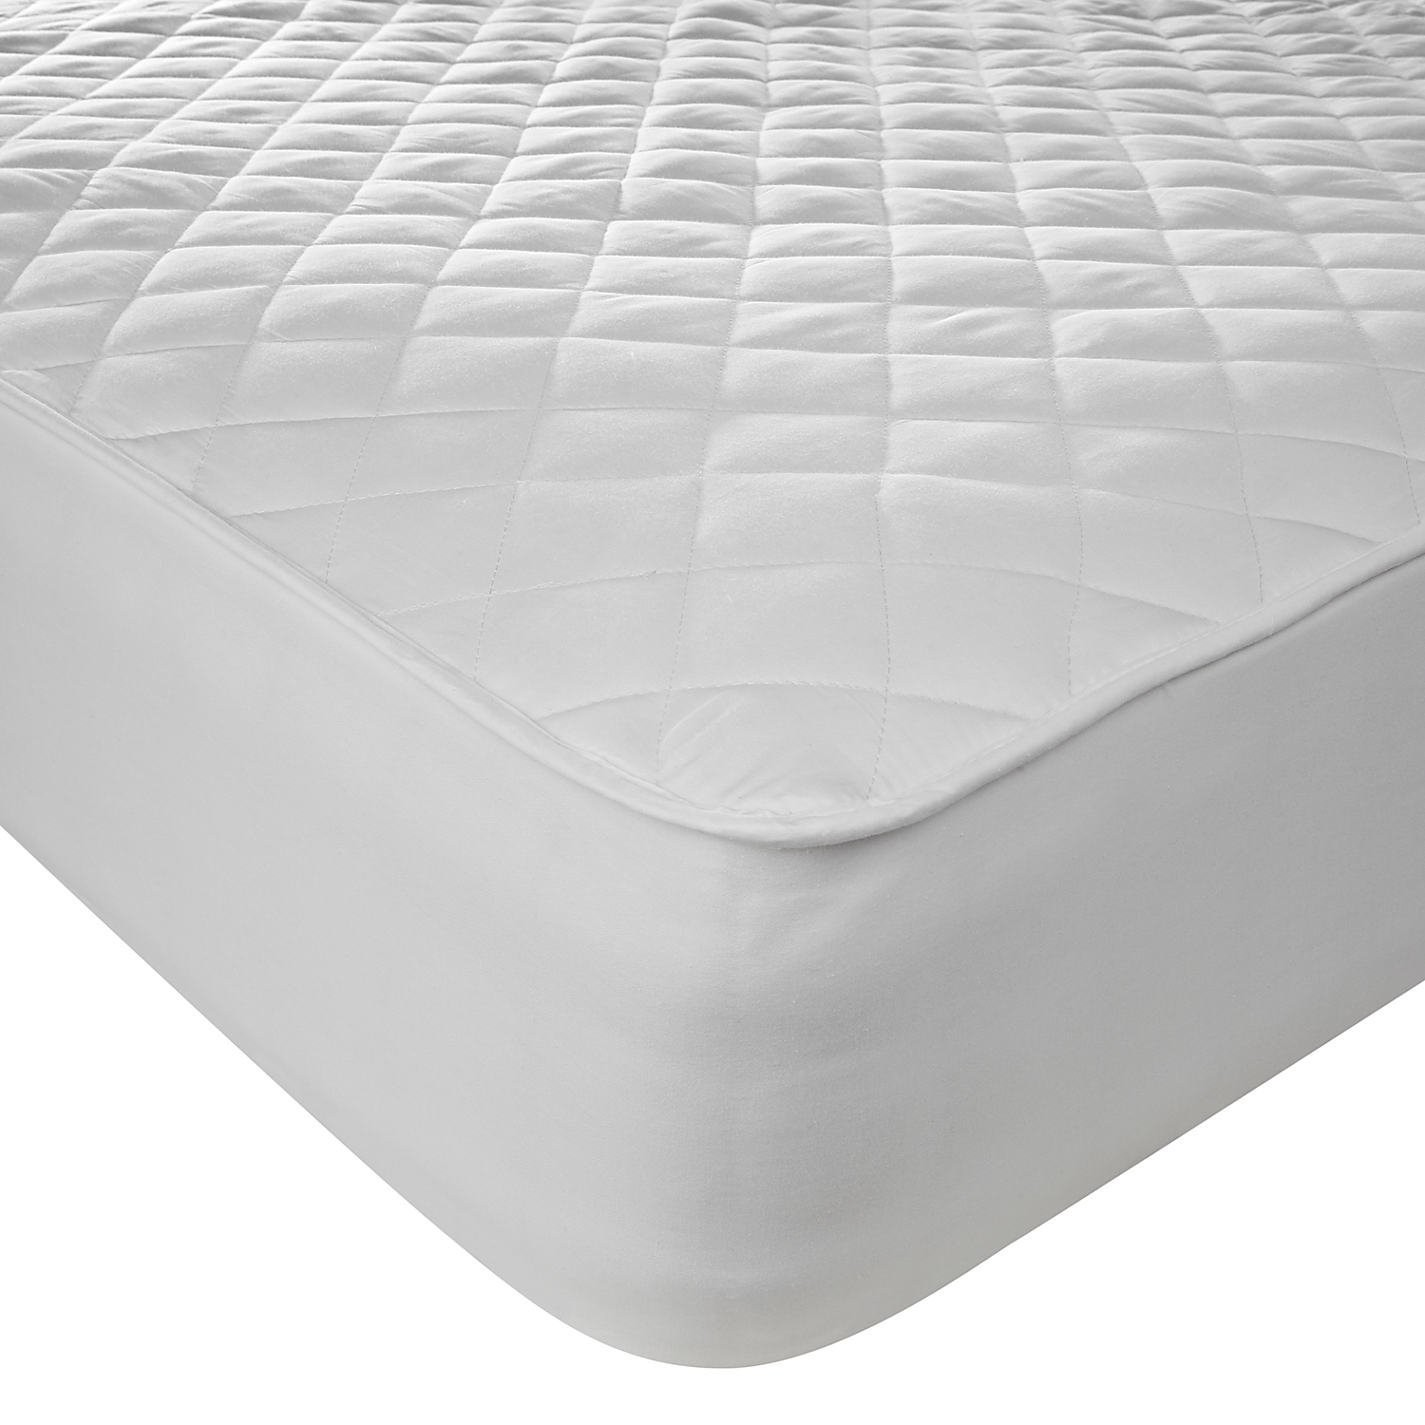 DreamEasy Pure Luxury Quilted Egyptian Cotton Mattress